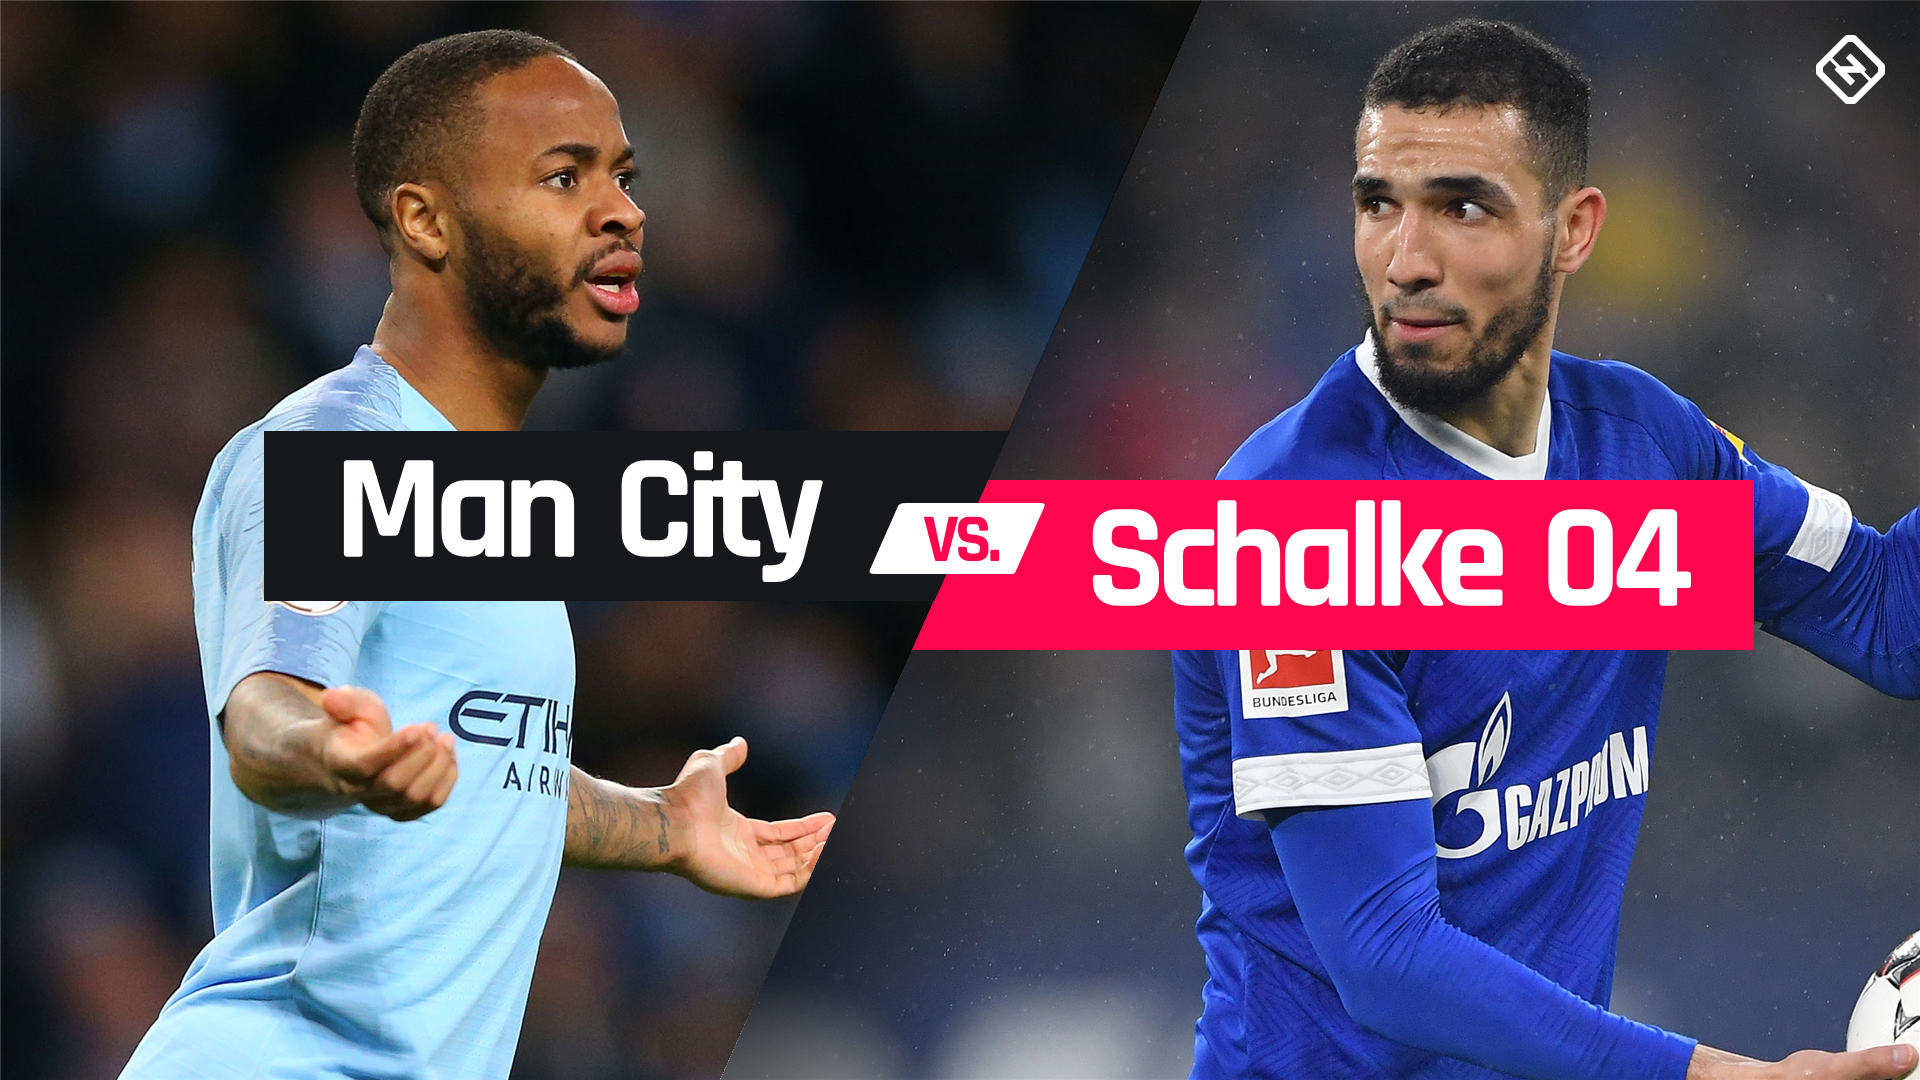 Man City Vs Schalke